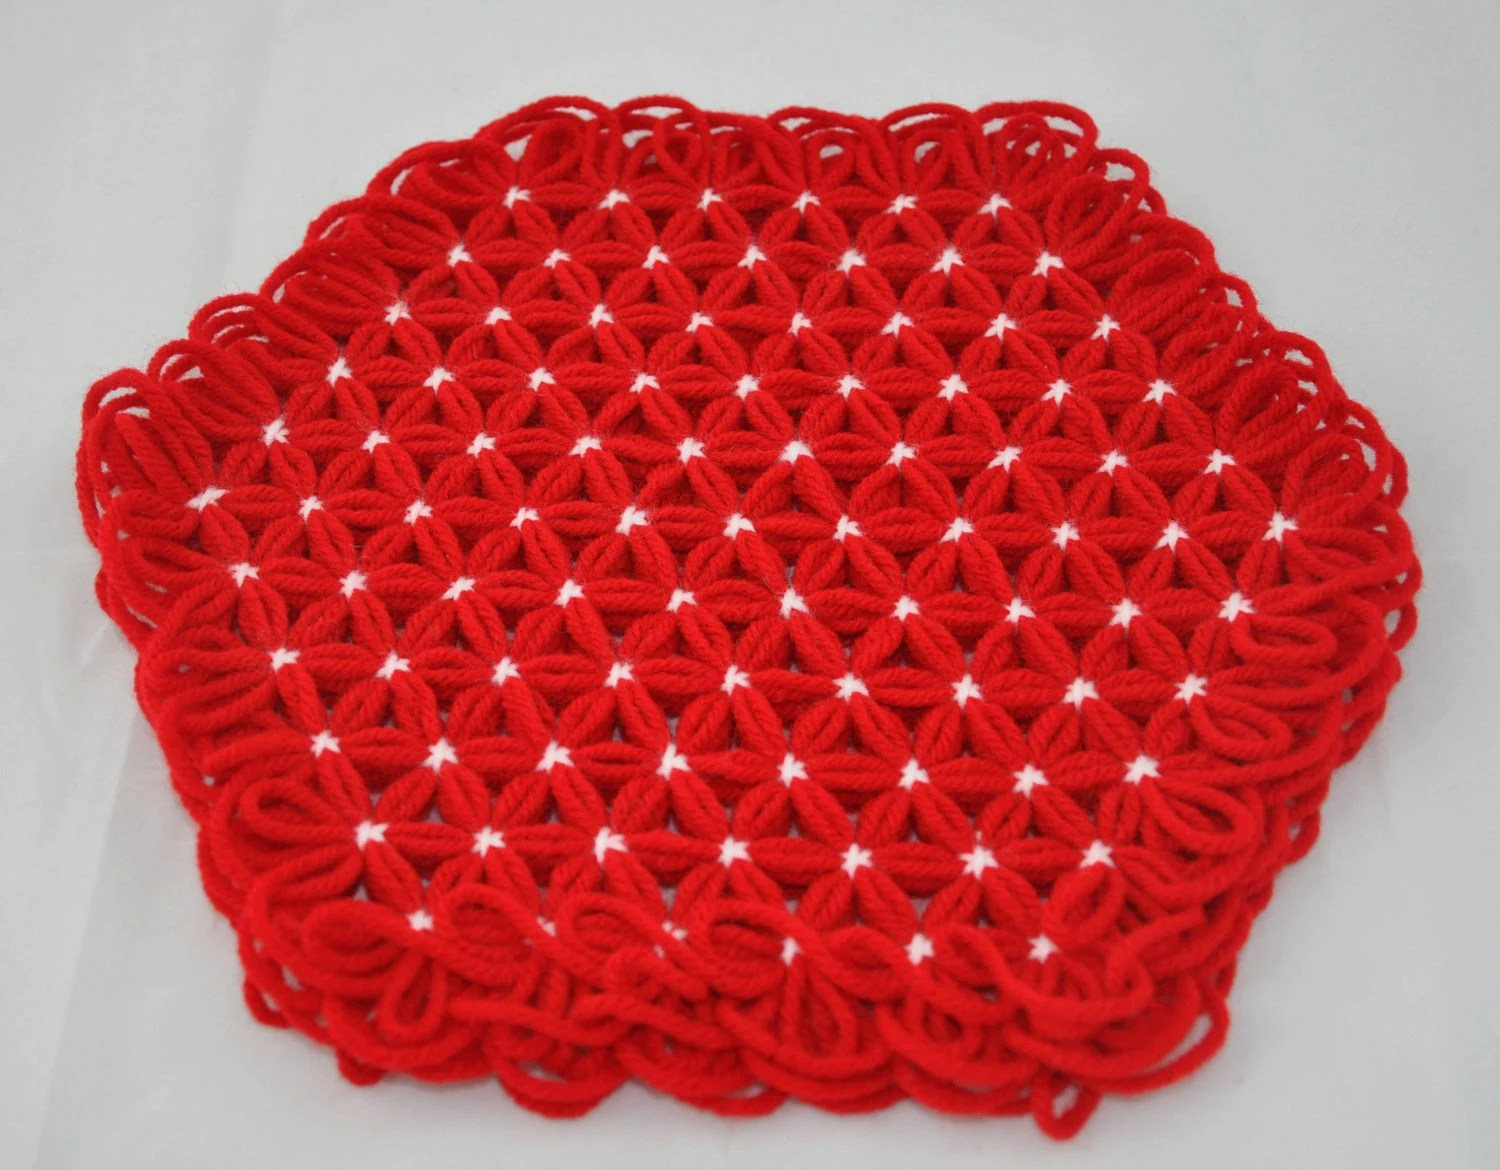 Small Trivet in 4 Layers of Bright Red Yarn with White Ties